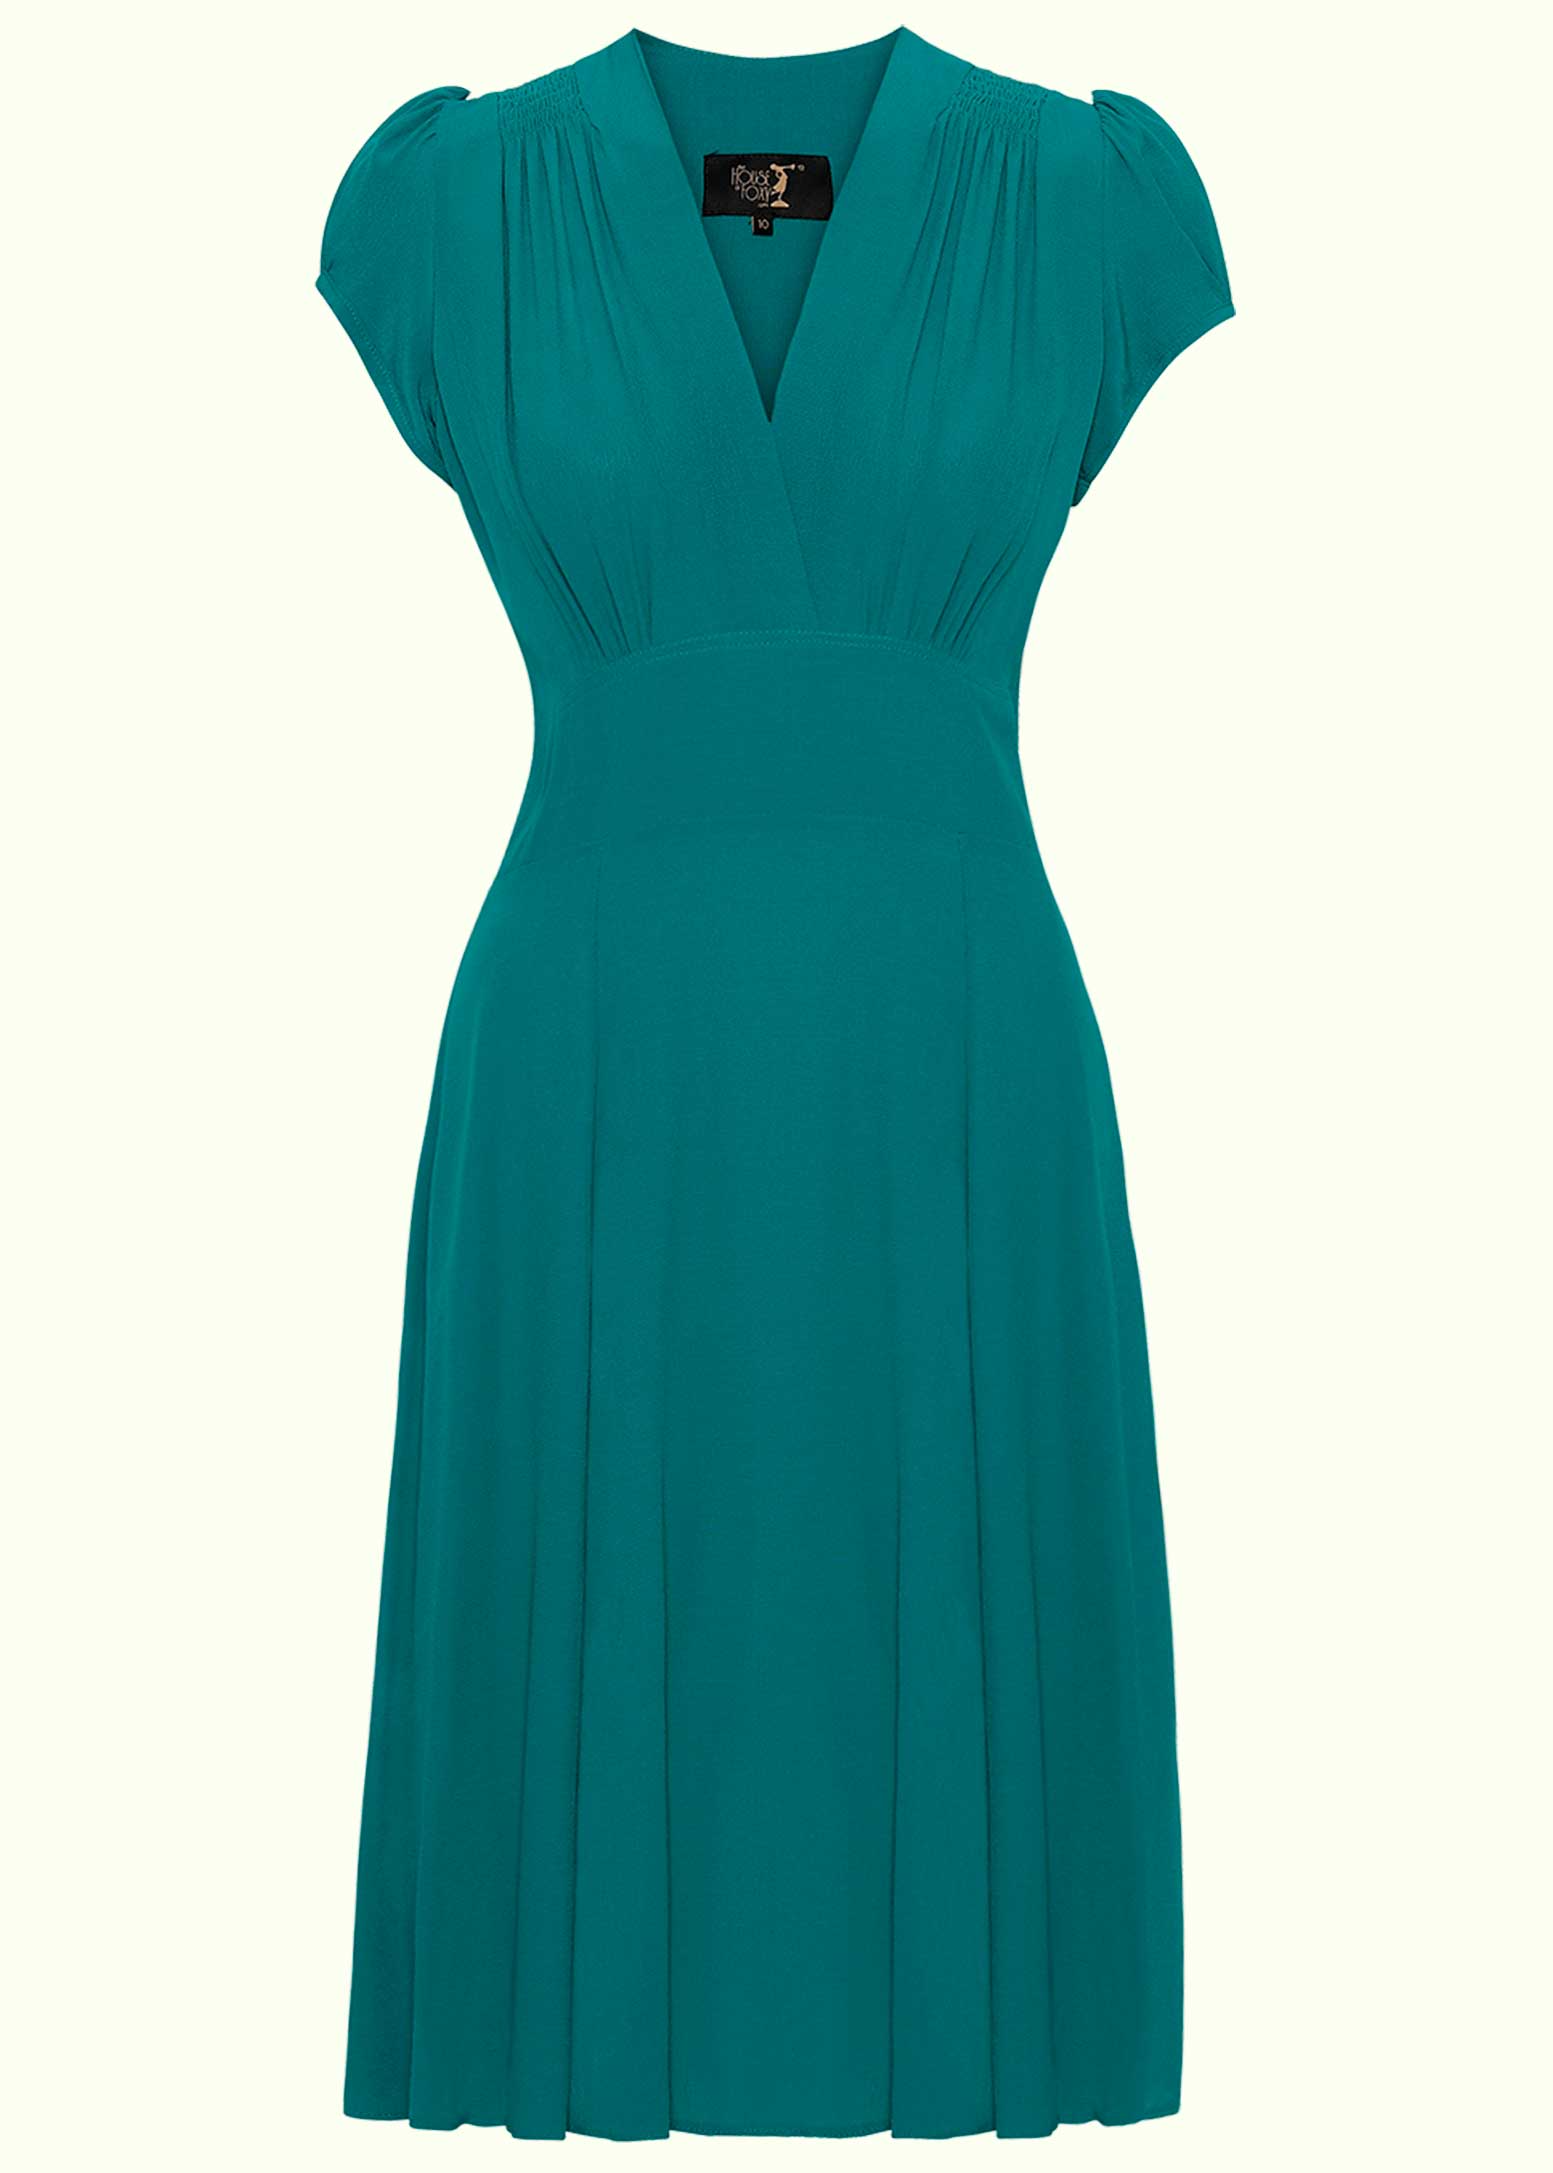 Ava dress in Teal